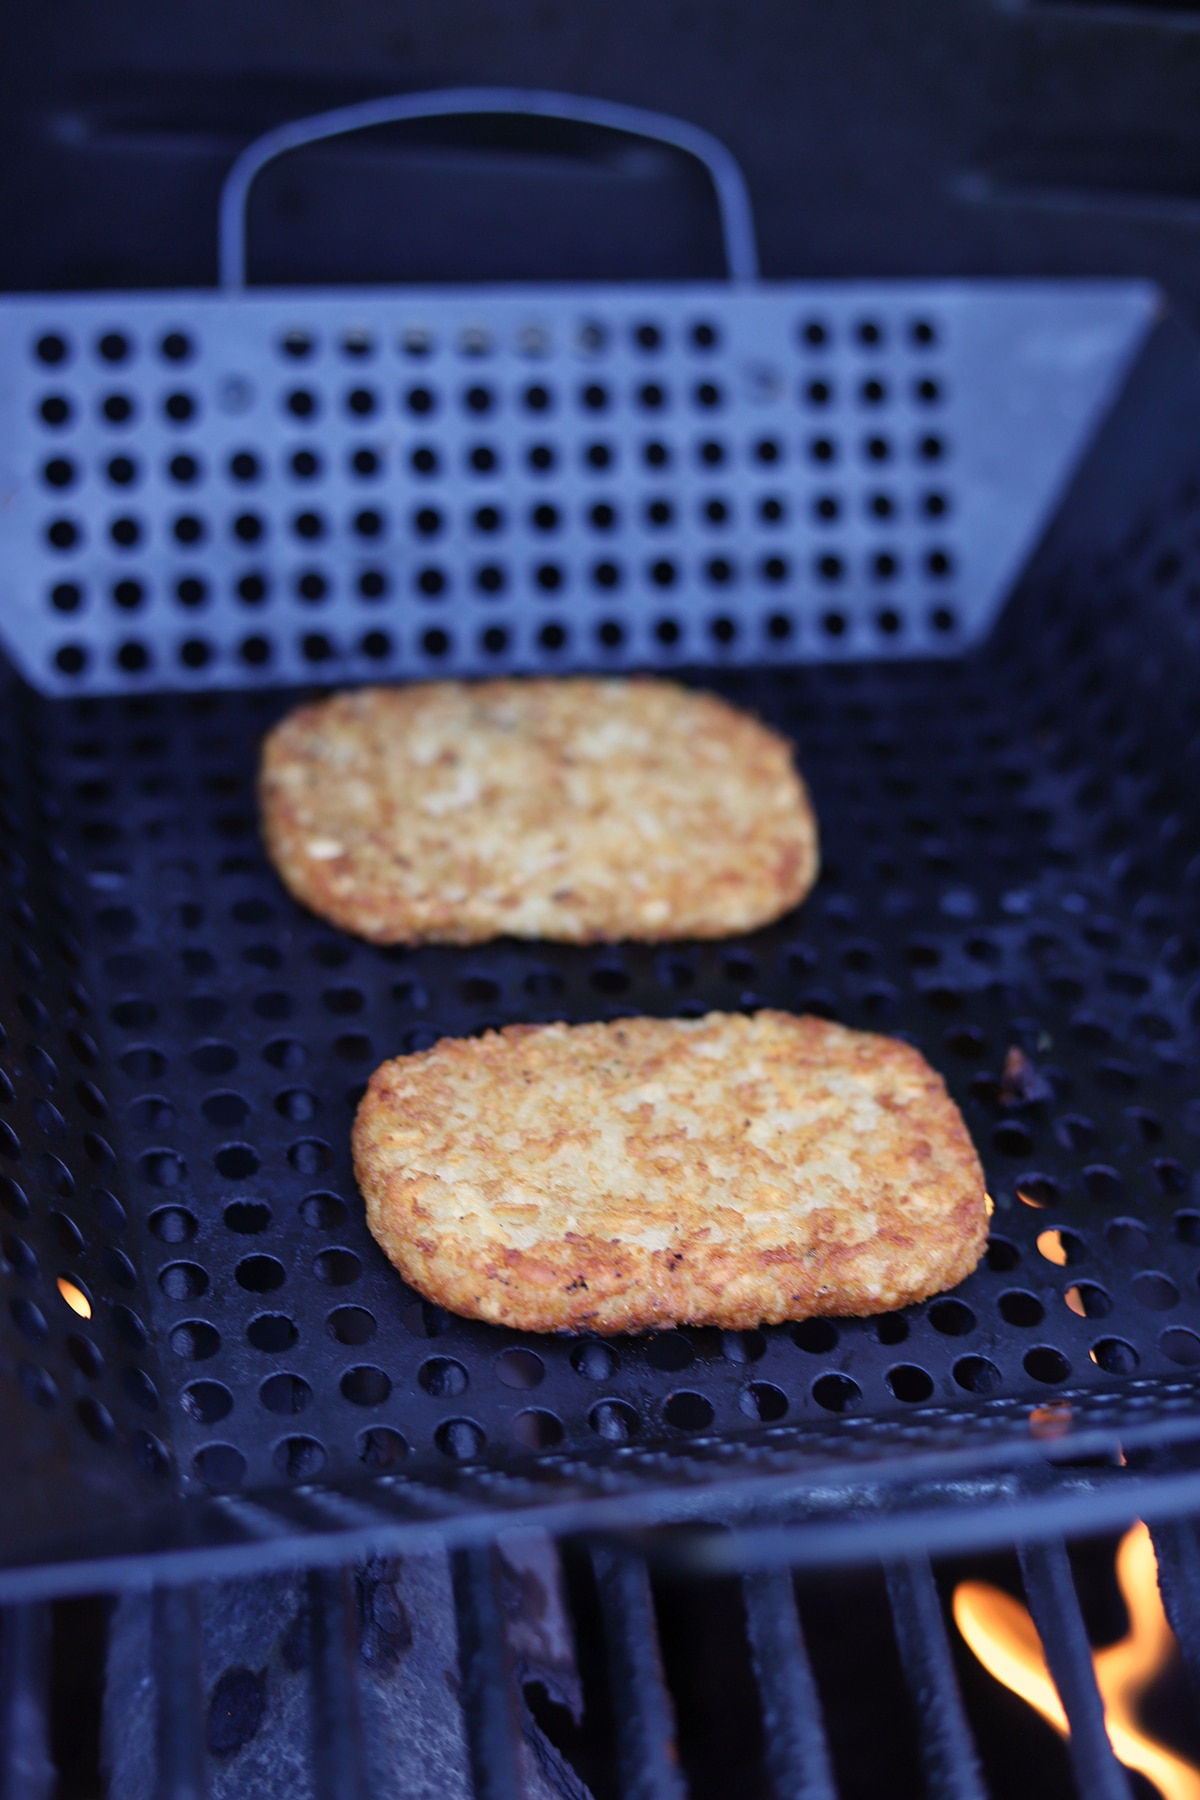 Hashbrowns in a grill basket on the grill.